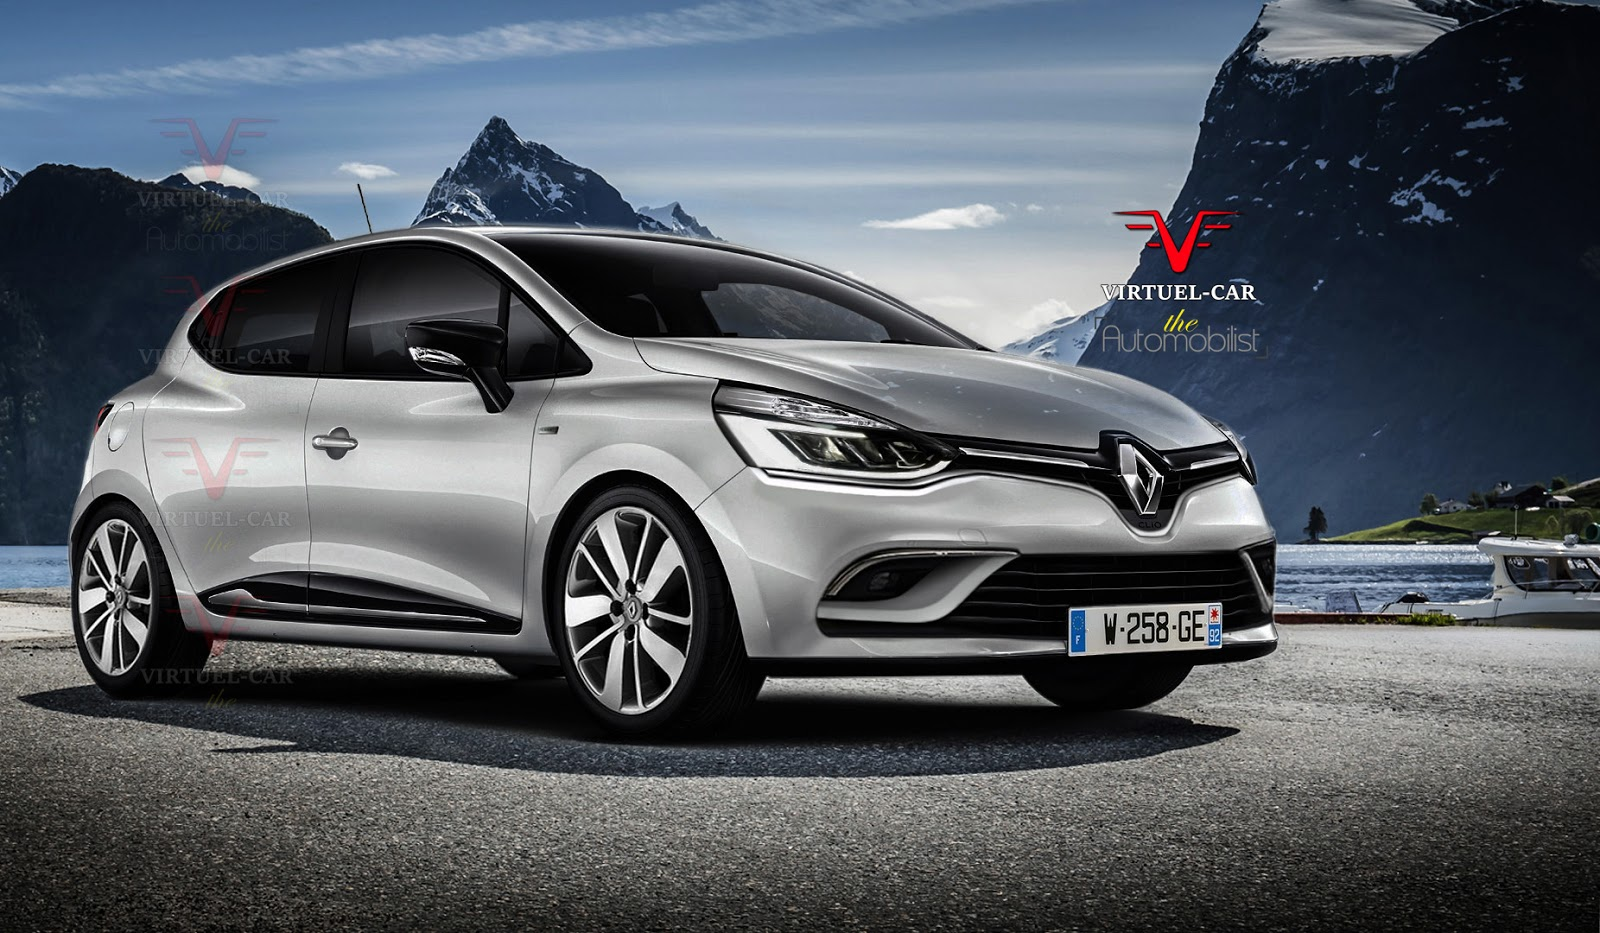 2017 renault clio iv facelift rendered based on recent leak autoevolution